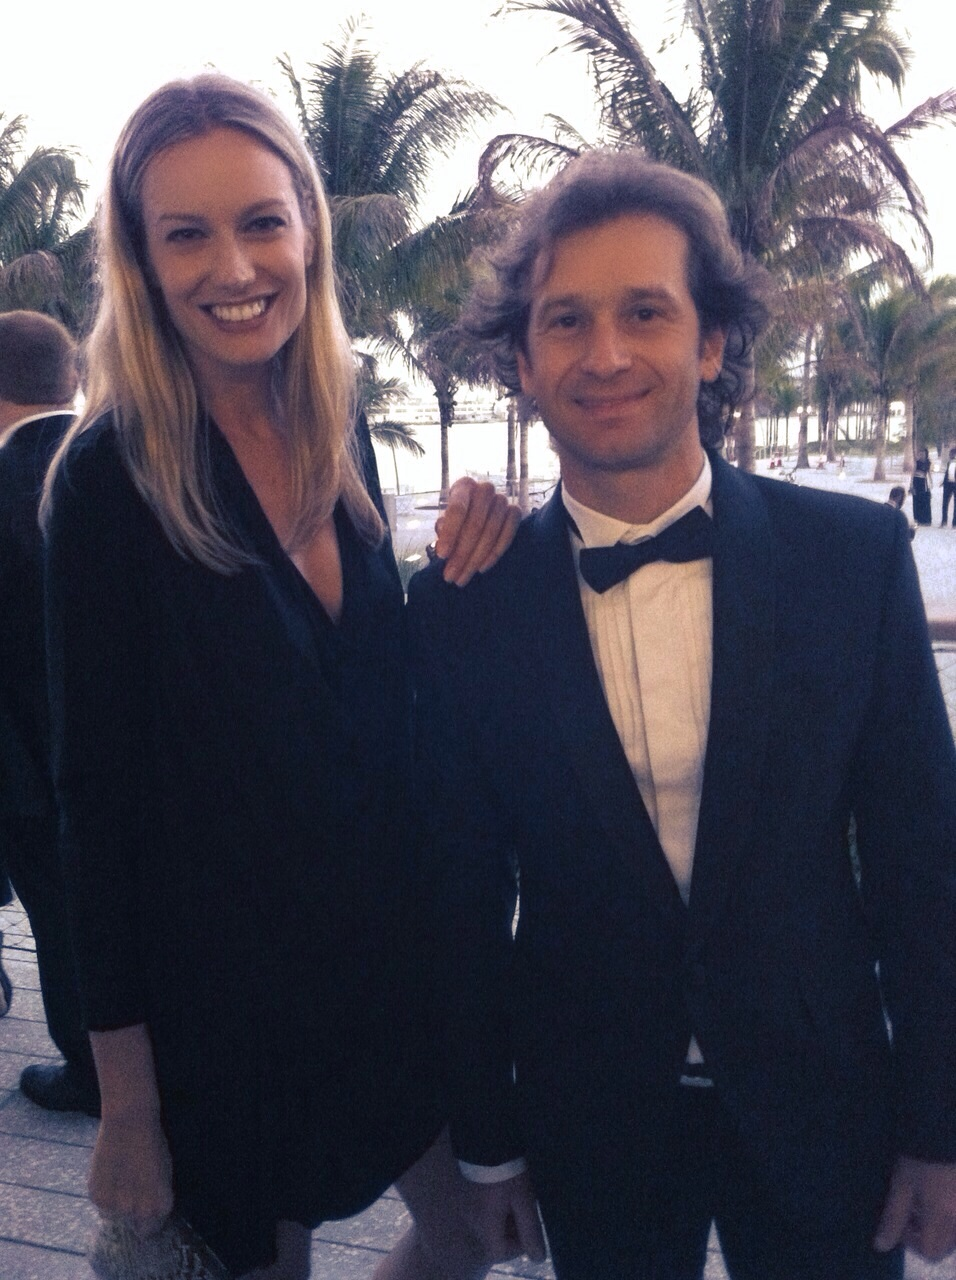 So happy to meet the Italian pilot Jarno Trulli!